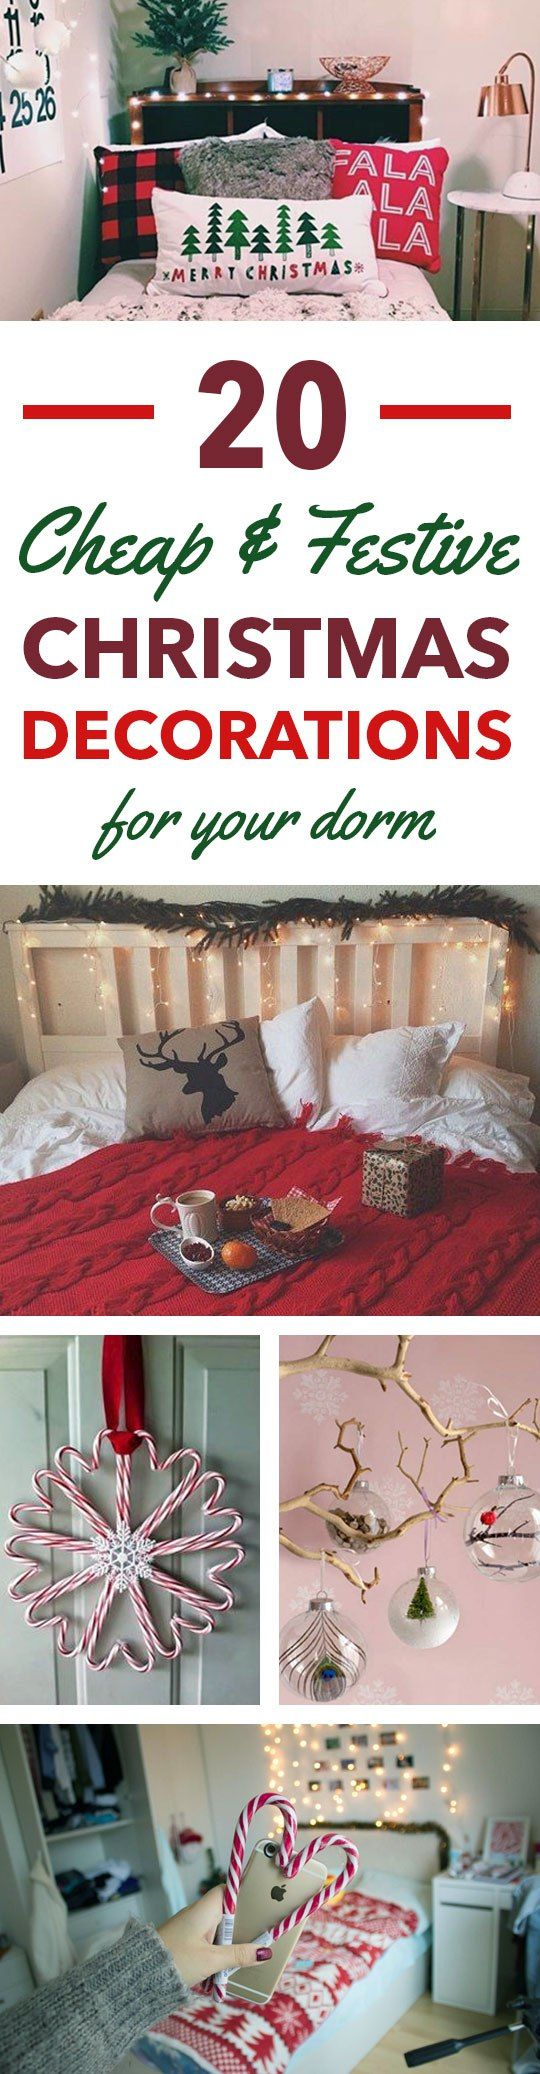 20 Cheap & Festive Items To Decorate Your Dorm For Christmas – SOCIETY19